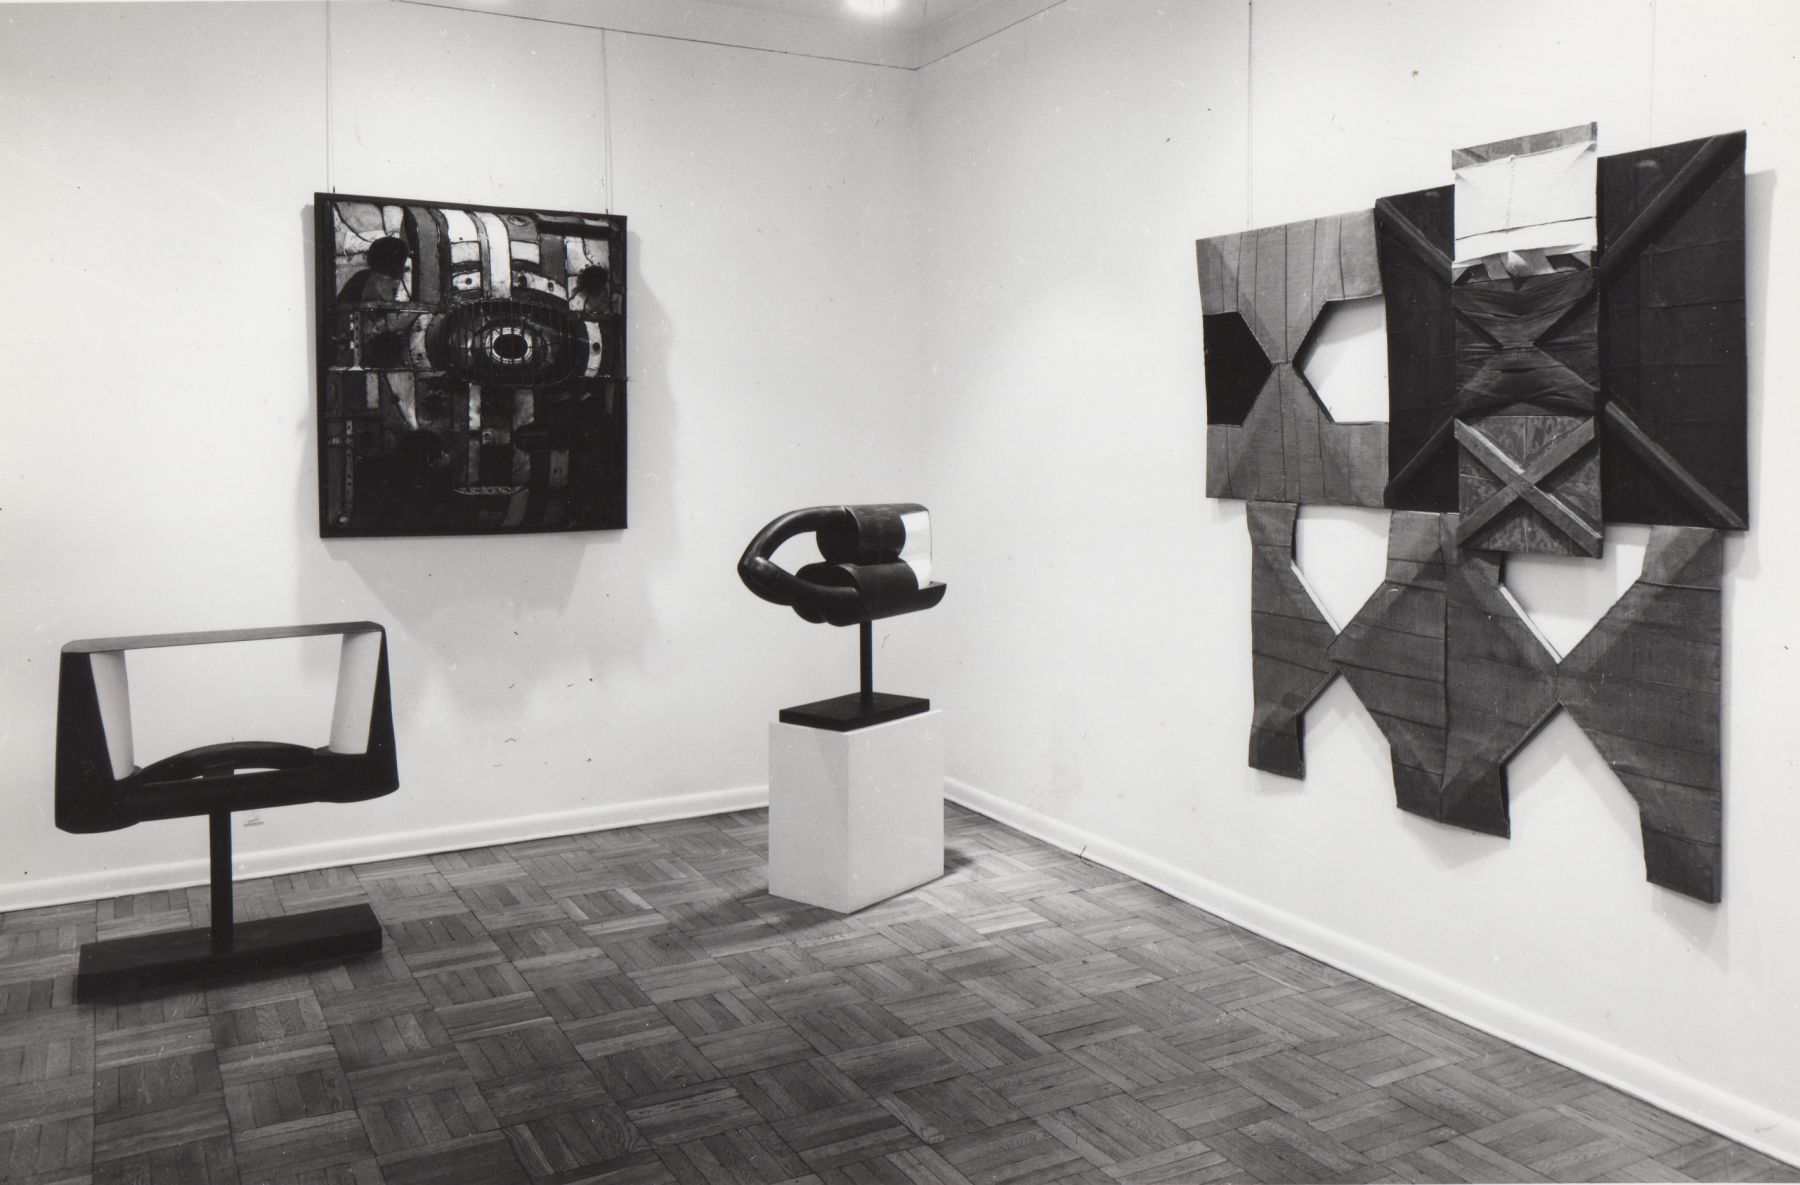 Installation view, Summary 1959 – 1960, 4 EAST 77